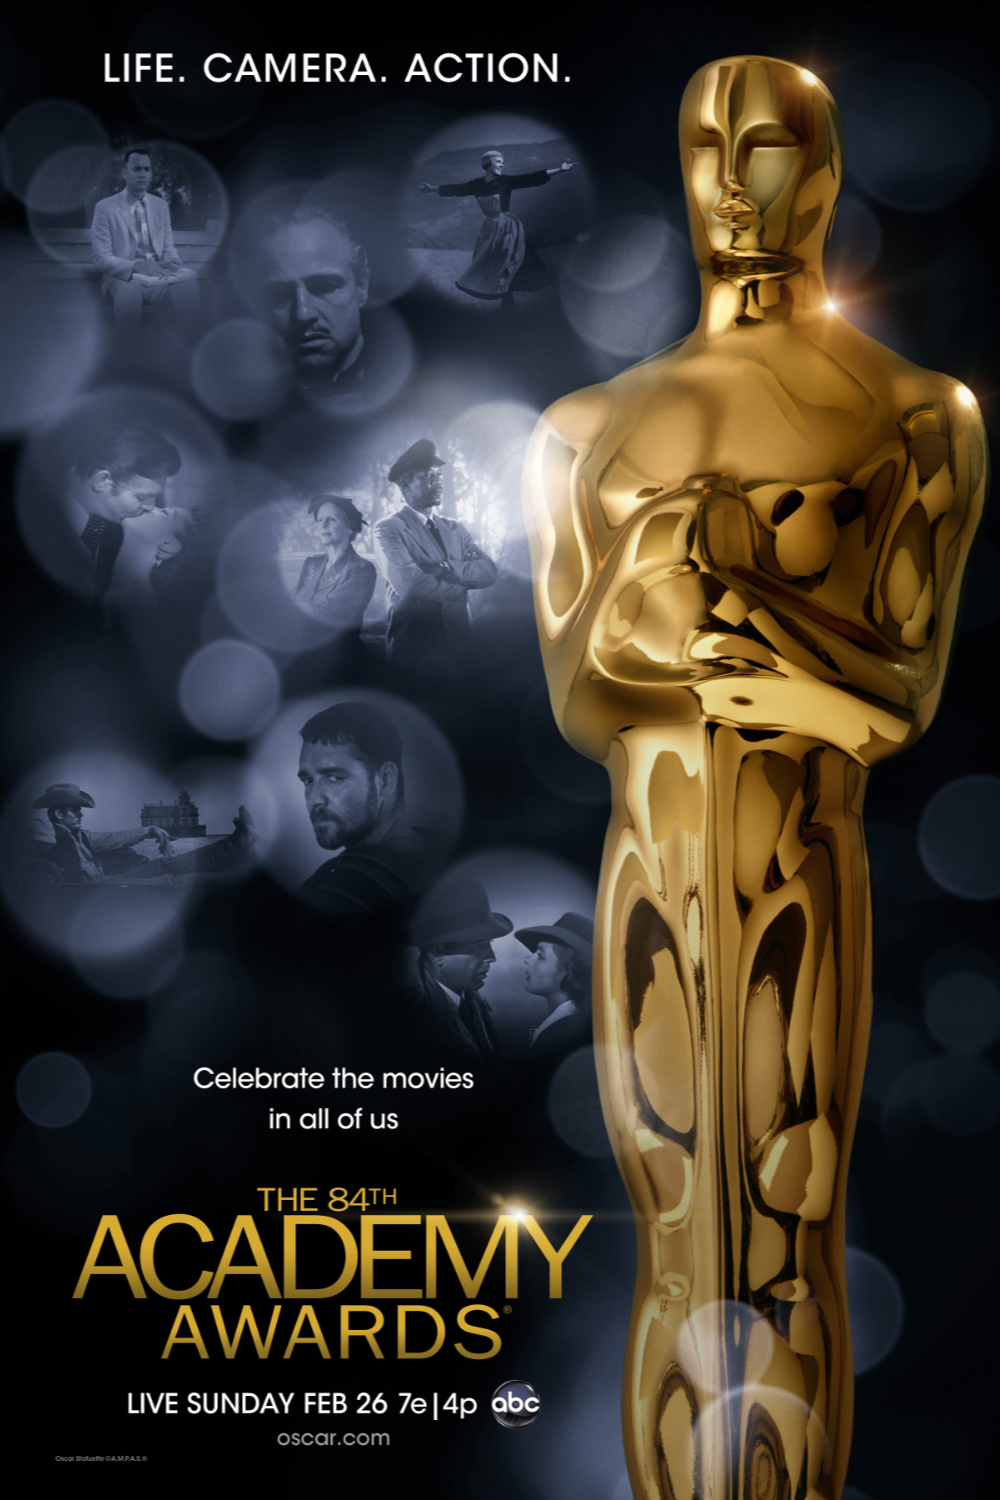 Celebrate the Music - The 84th Academy Awards